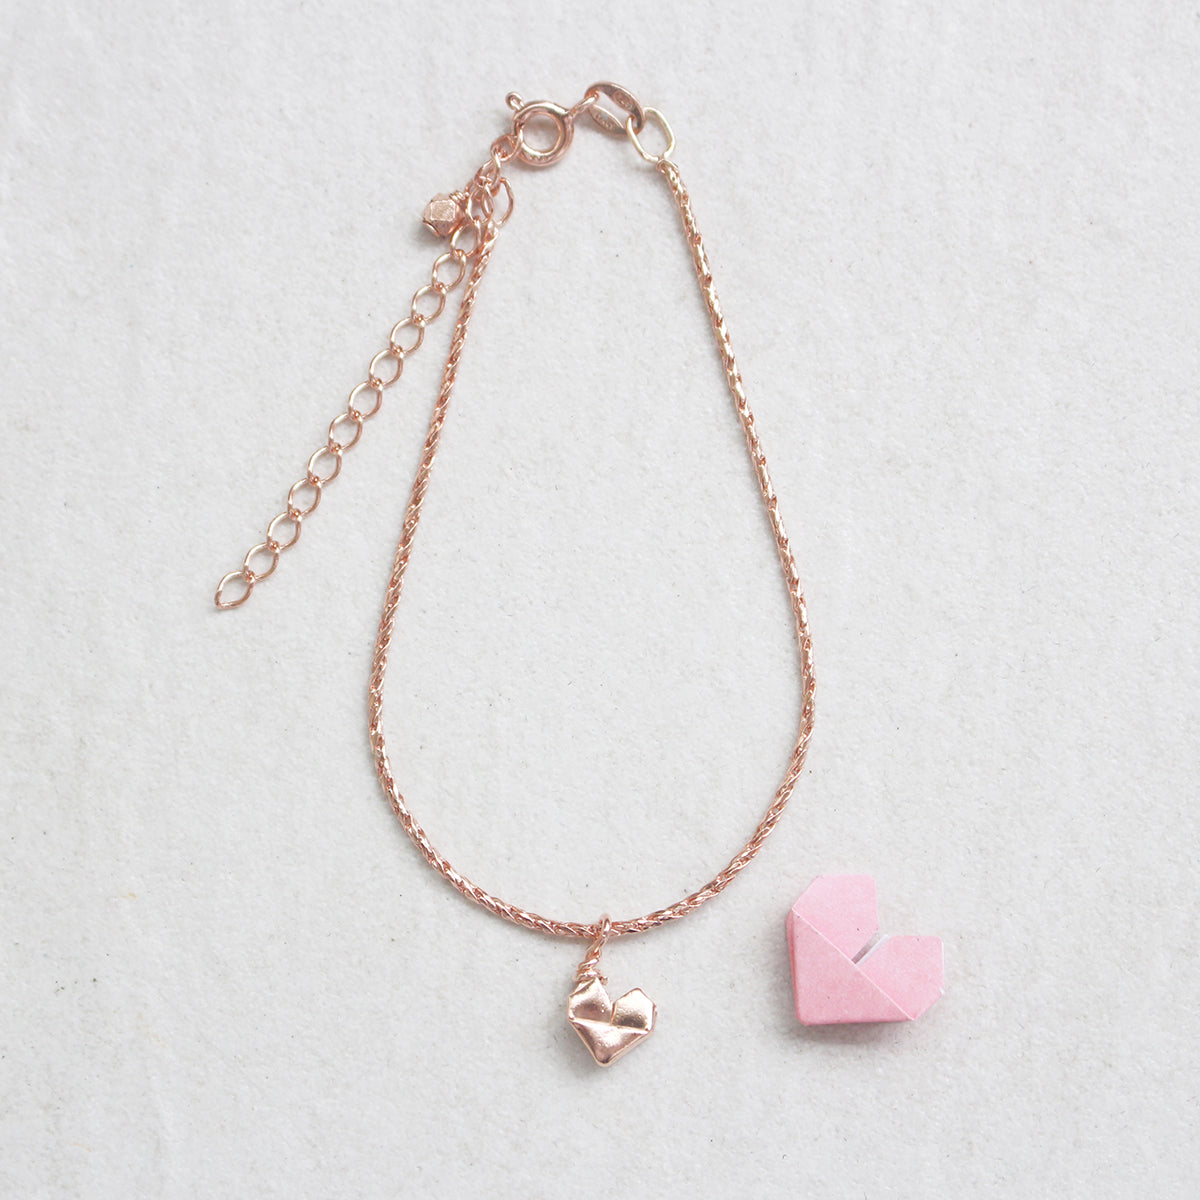 Rose Gold Plated 925 Silver Teeny Tiny Origami Heart Bracelet